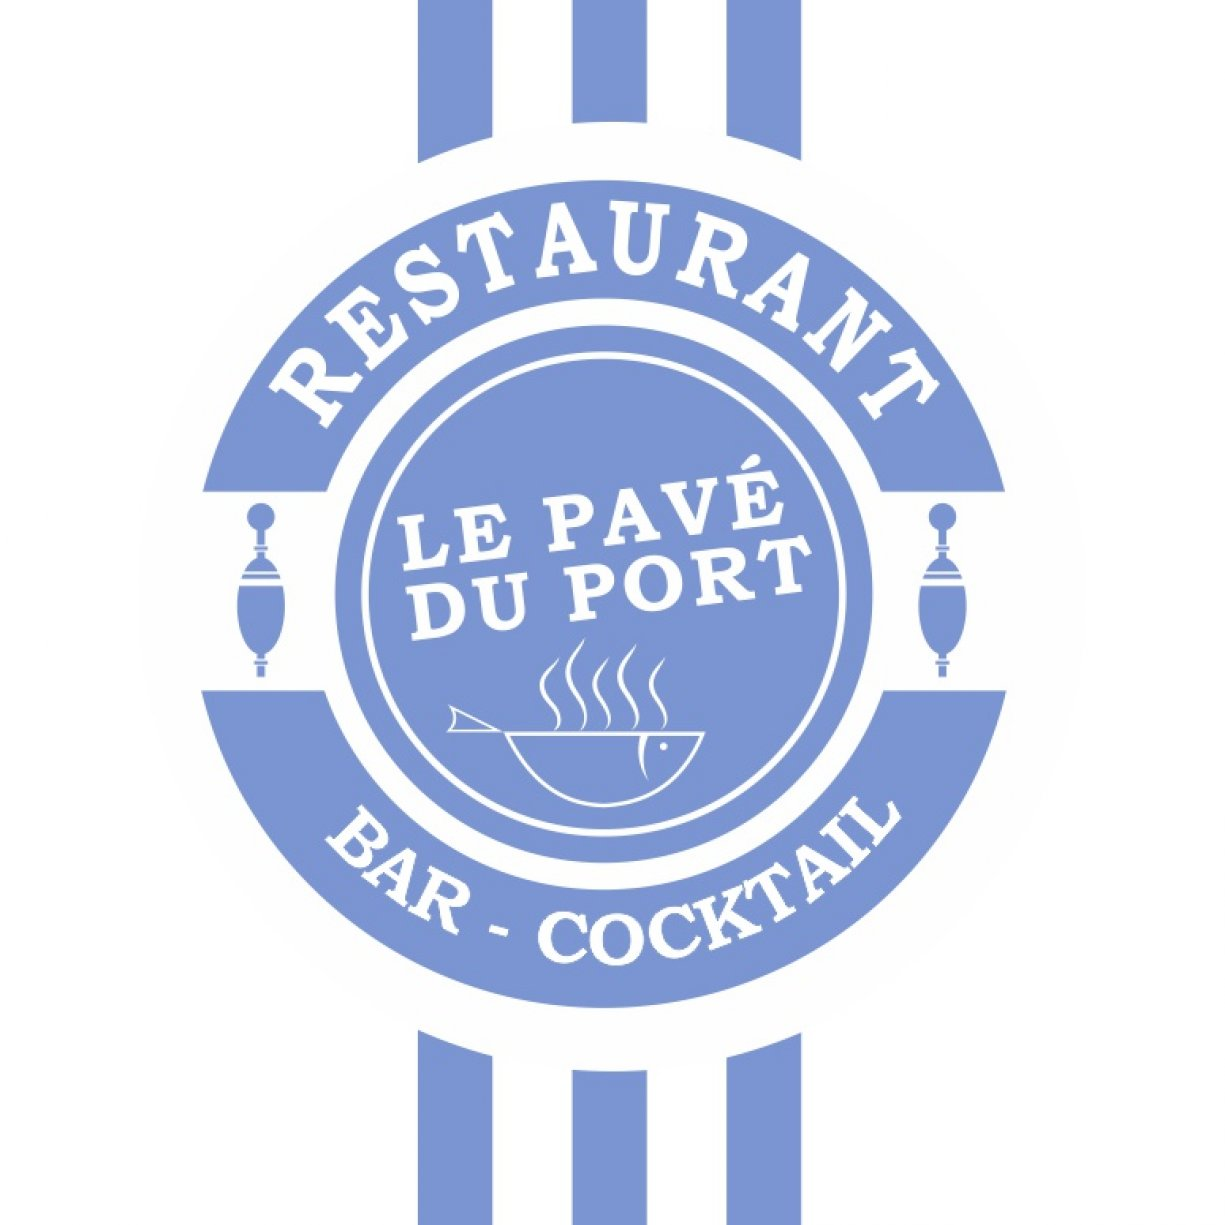 Le pavé du port Restaurant